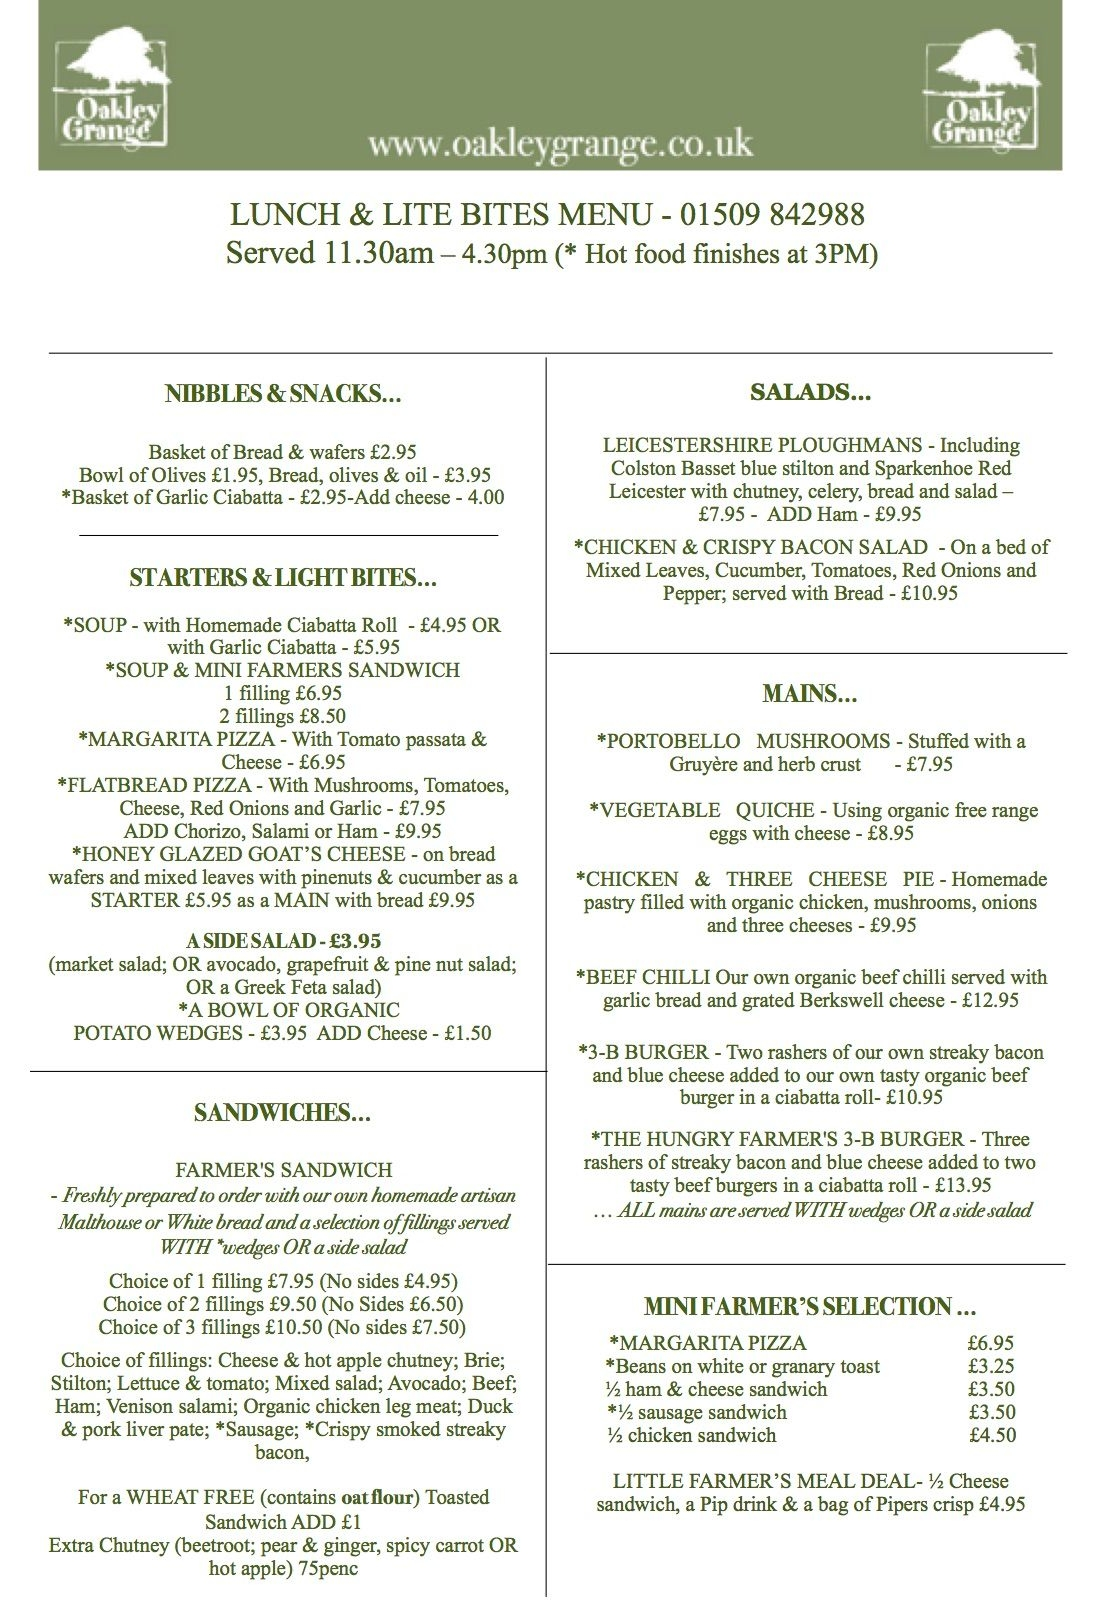 Sample Lunch & Lite Bites Menu